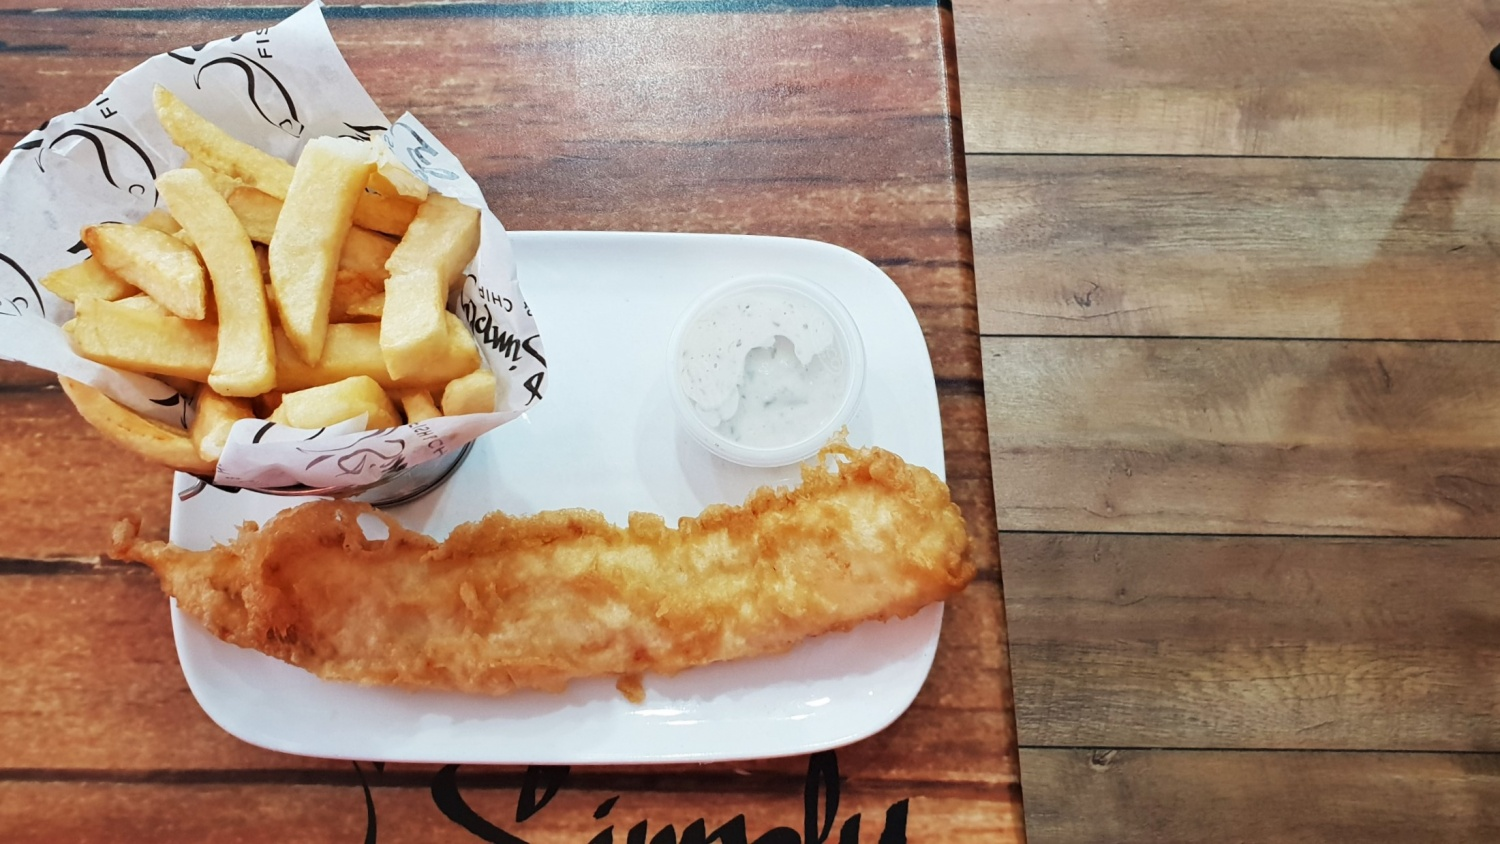 Belfast Fish and chips